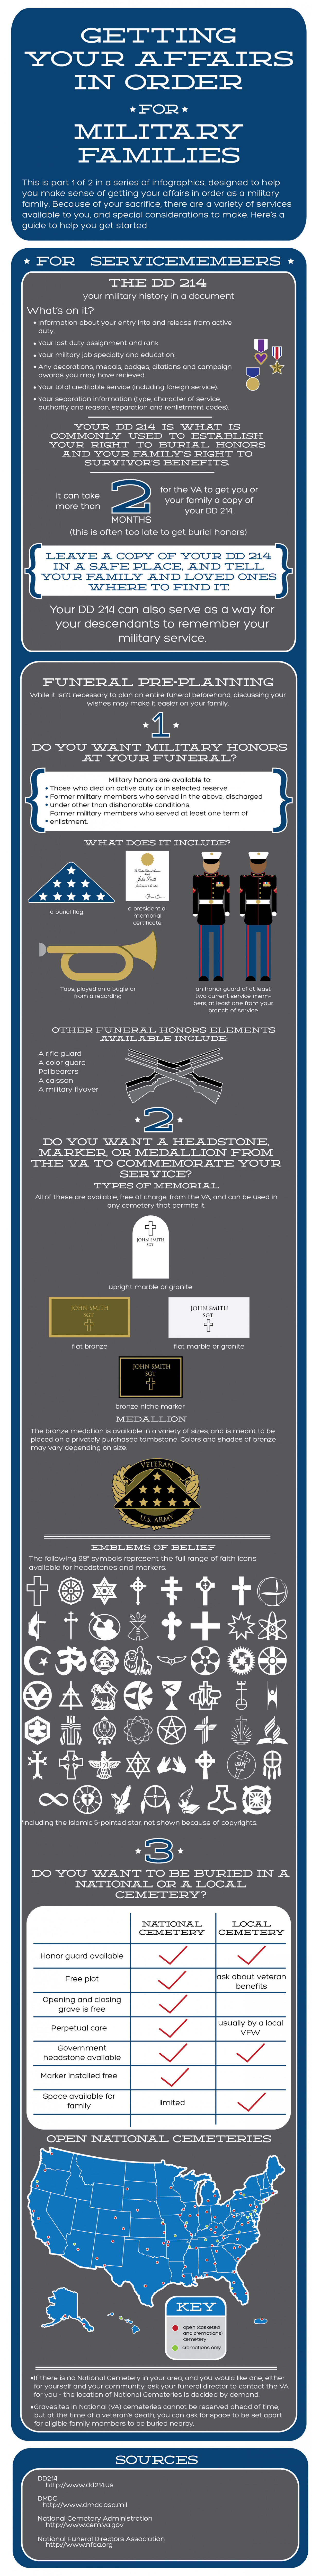 Getting Your Affairs in Order for Military Families: Part 1 Infographic